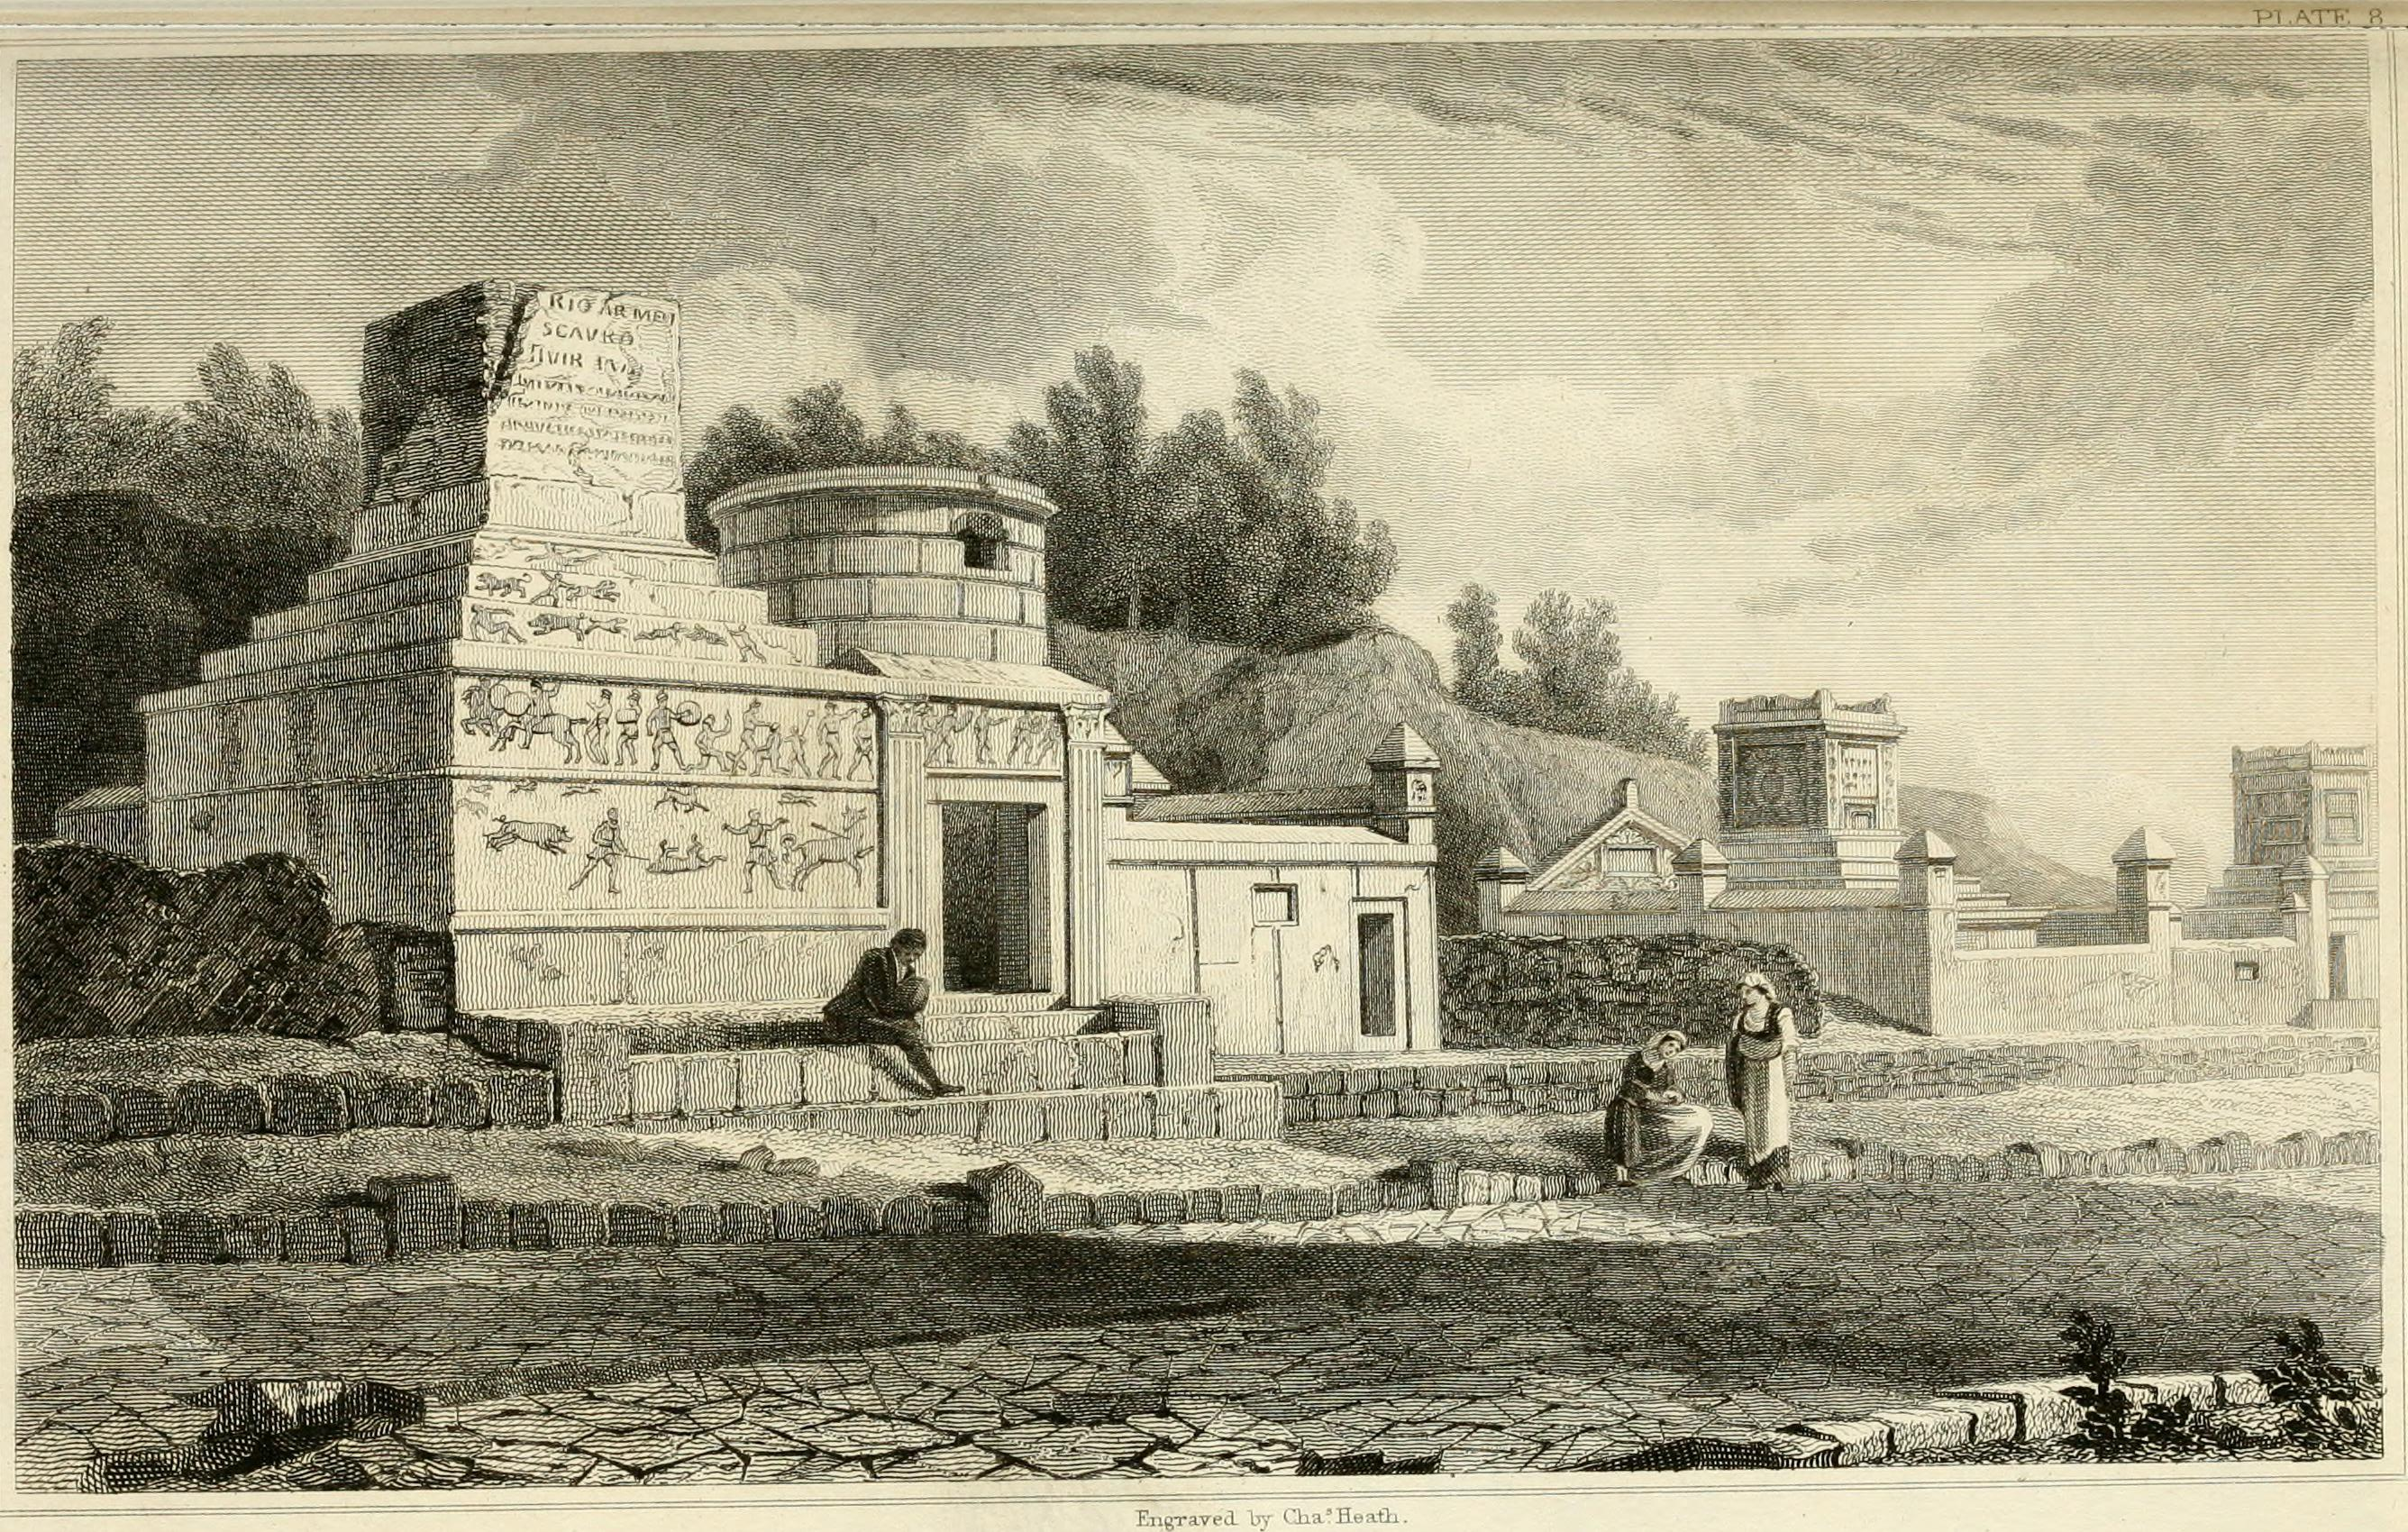 File:Pompeiana - the topography, edifices, and ornaments of Pompeii (1817)